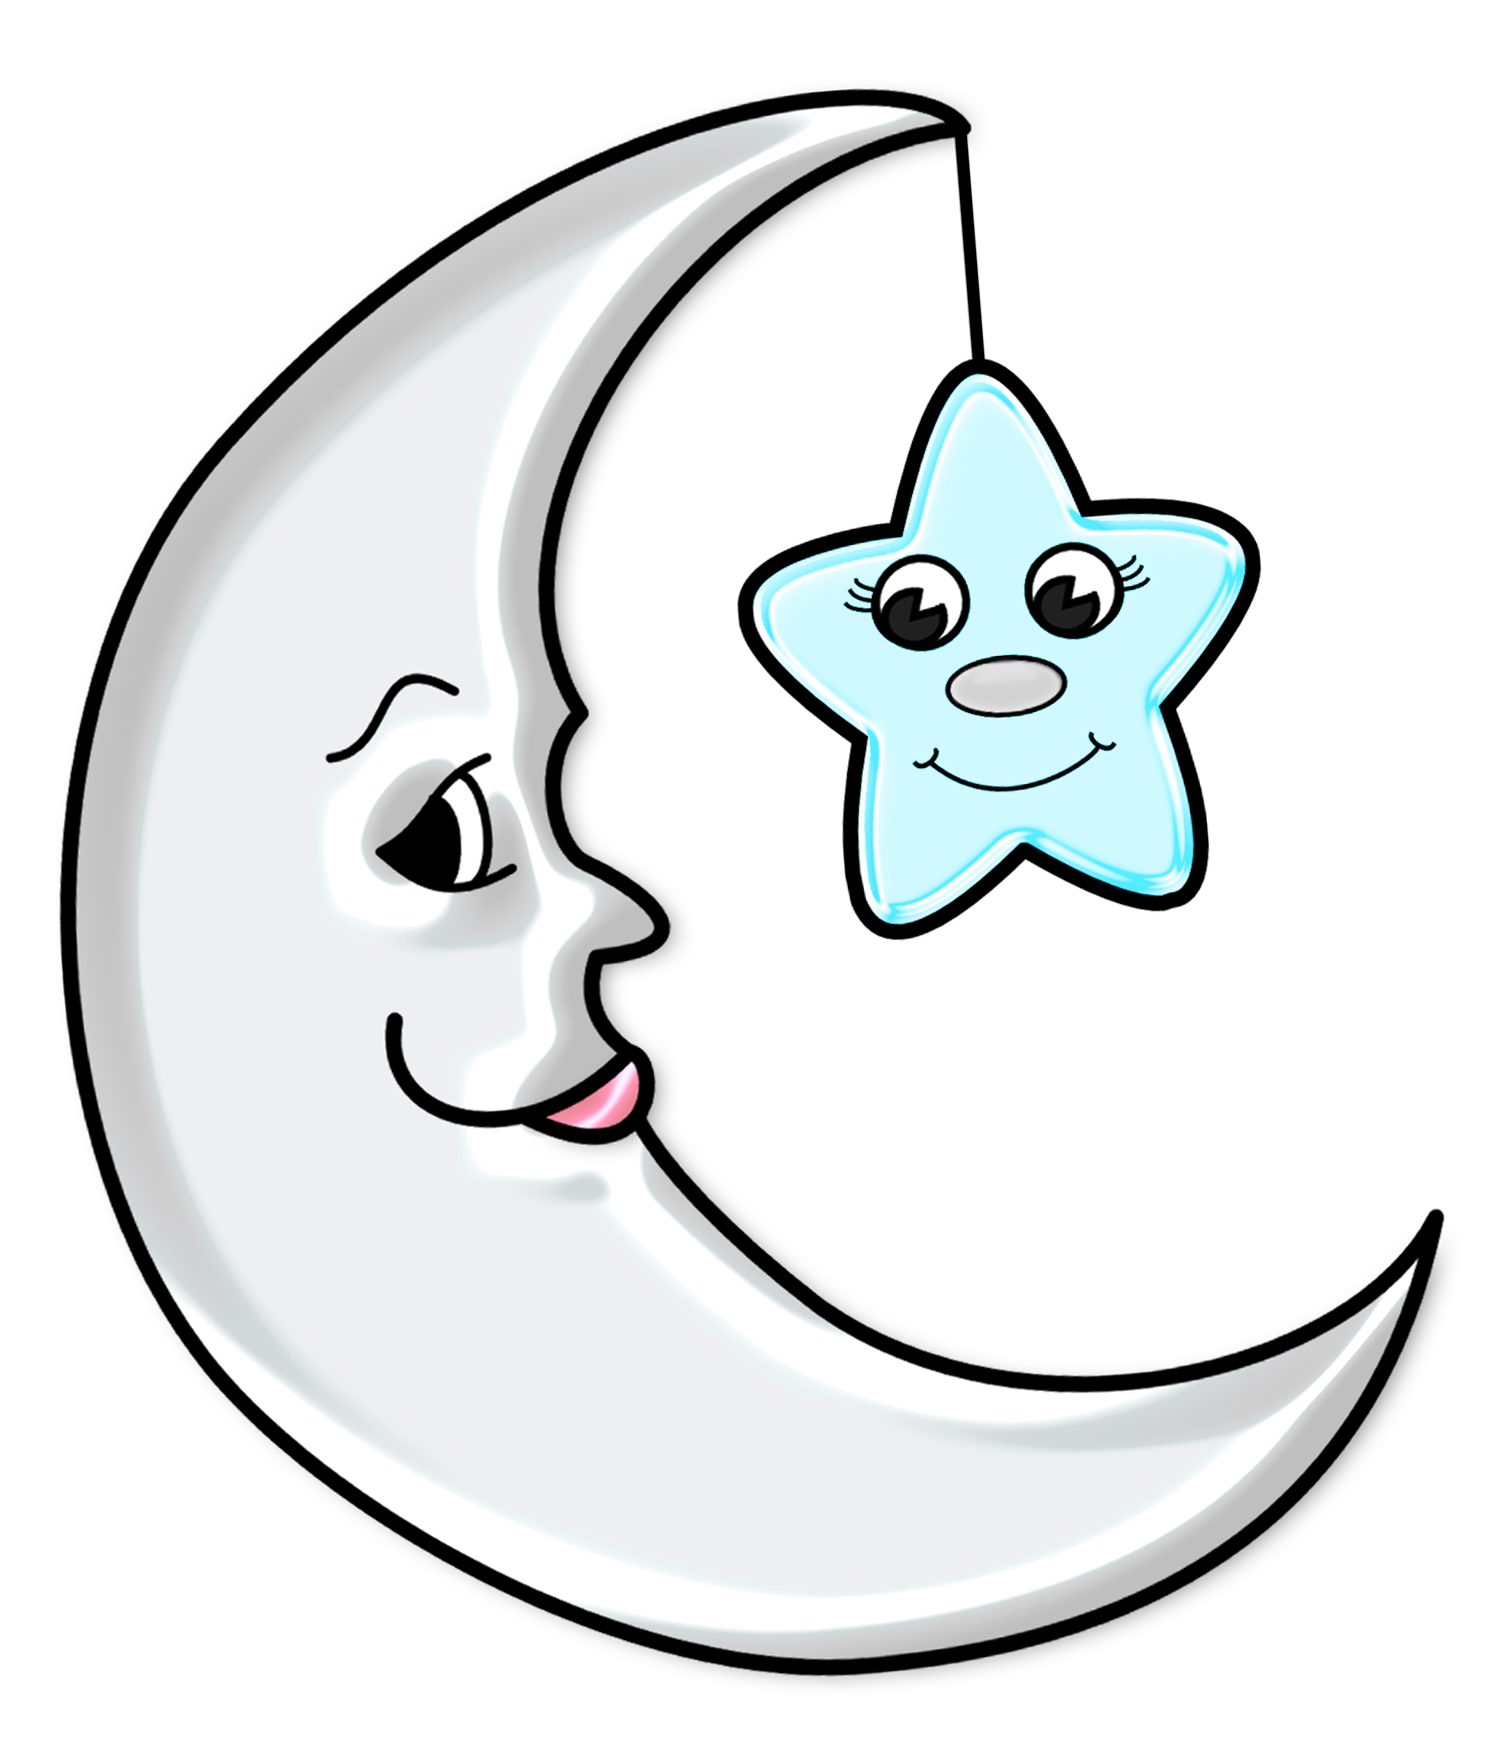 Moon and star clipart royalty free stock Sun Moon Stars Drawing at GetDrawings.com | Free for personal use ... royalty free stock